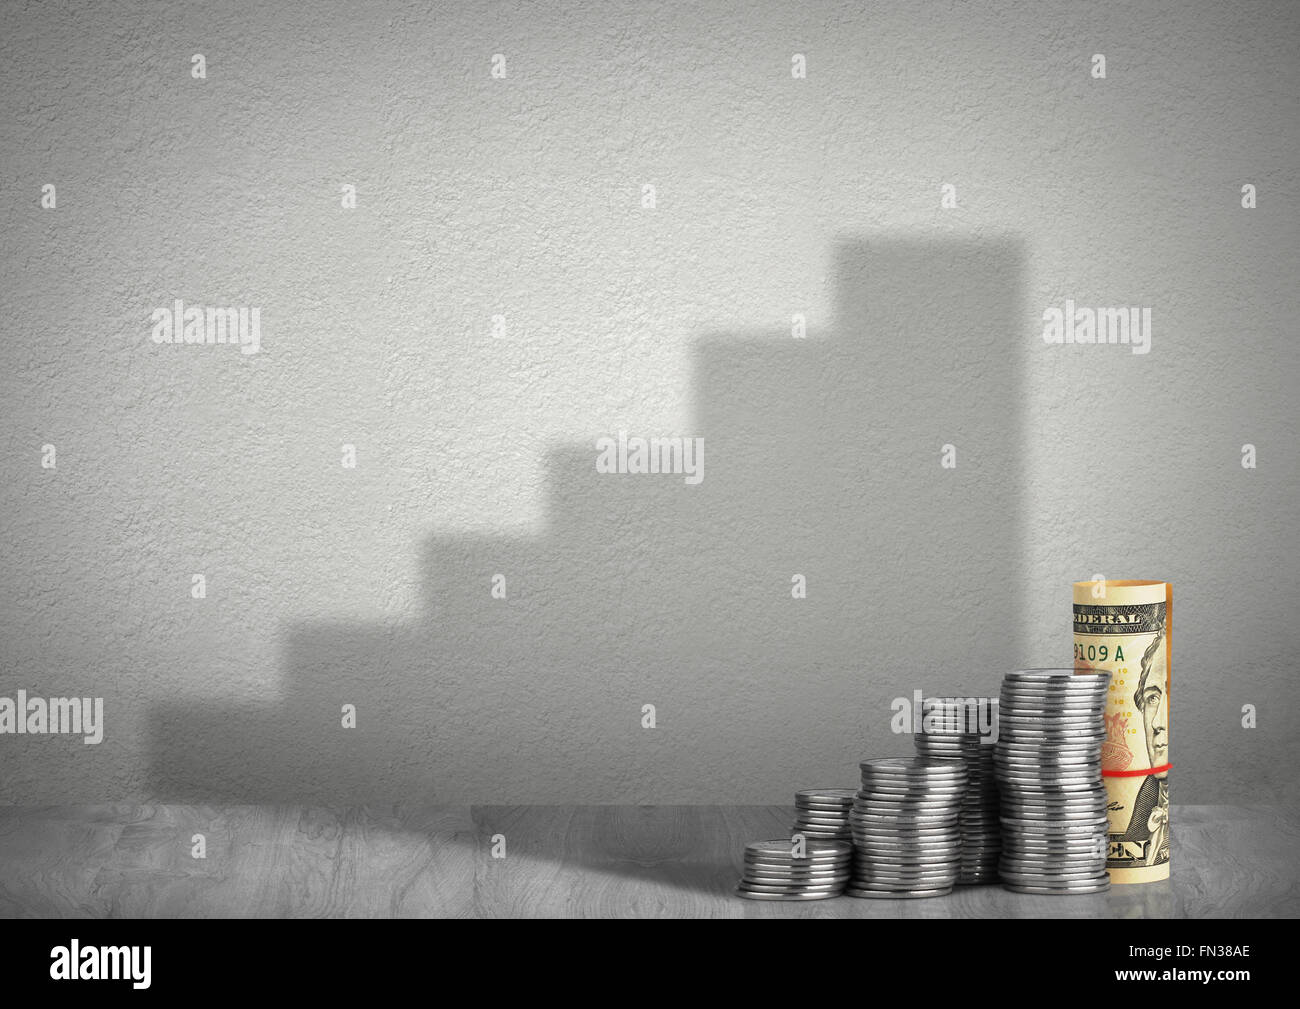 financial growth concept, money with shadow - Stock Image